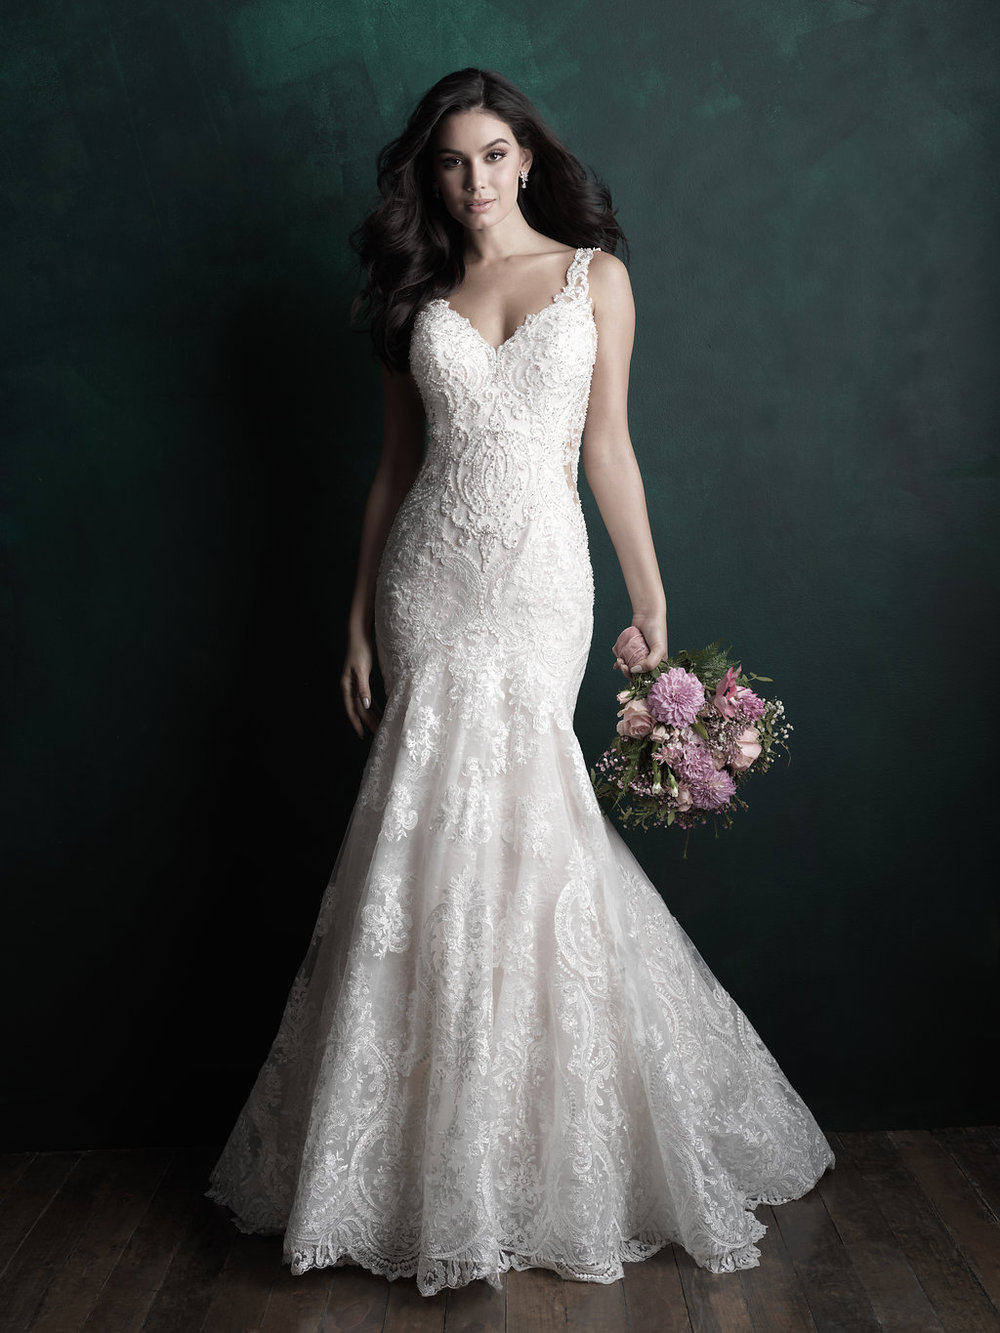 Lace Wedding Dresses | Inventory # 02269 | available at Bride To Be Couture | 6040 Fair Oaks Blvd. Carmichael, CA 95608 | 916.972.8223 | @bridetobecouture